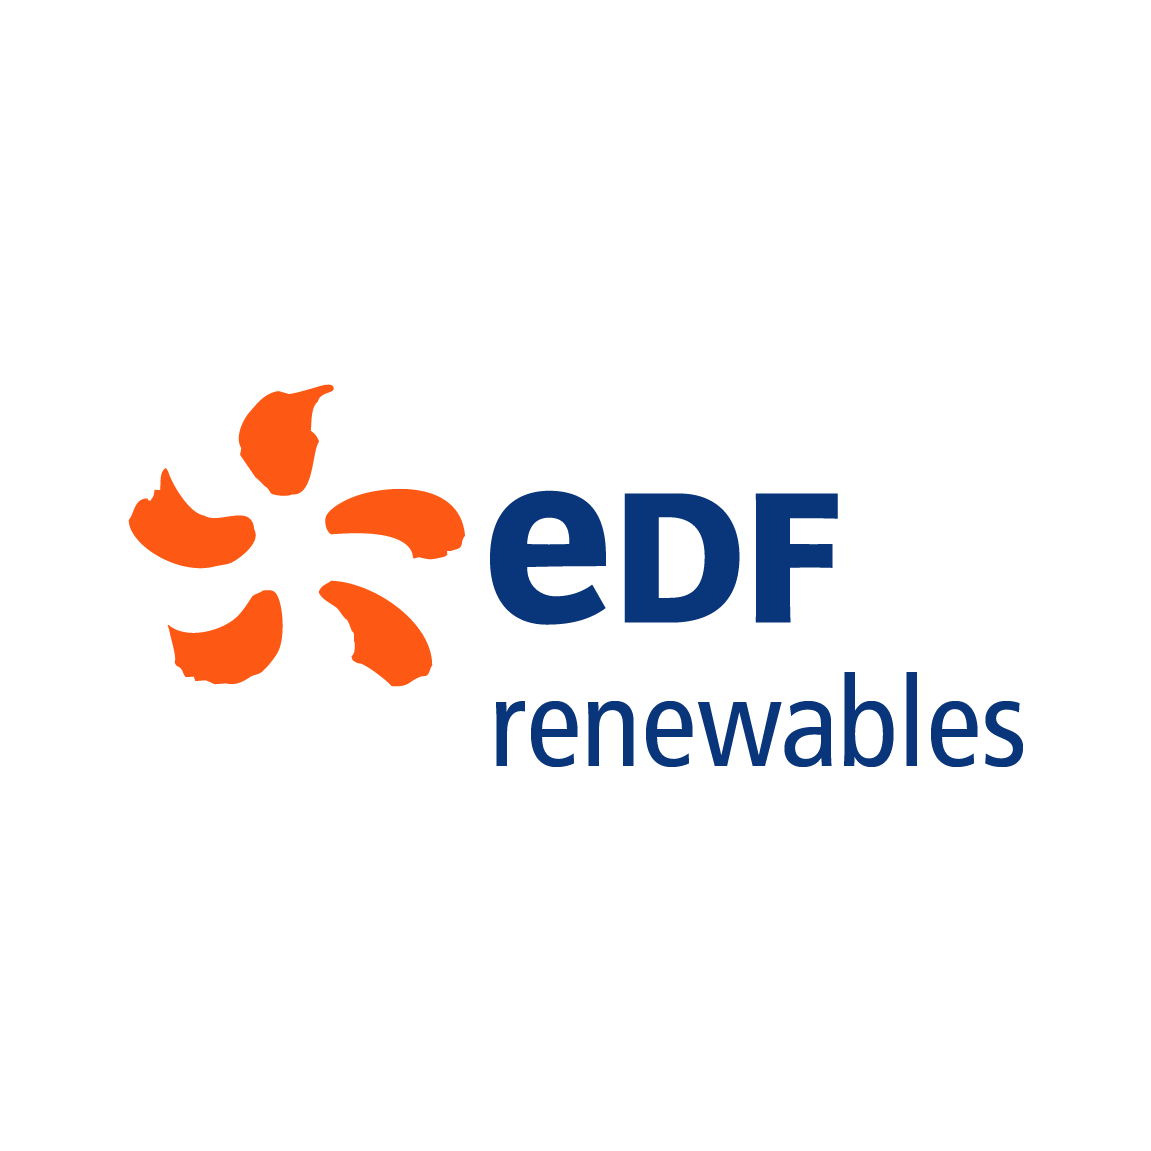 https://www.publicpower.org/sites/default/files/styles/square_large_/public/sponsors/logo-edf_1.jpg?itok=2rpvw1xV